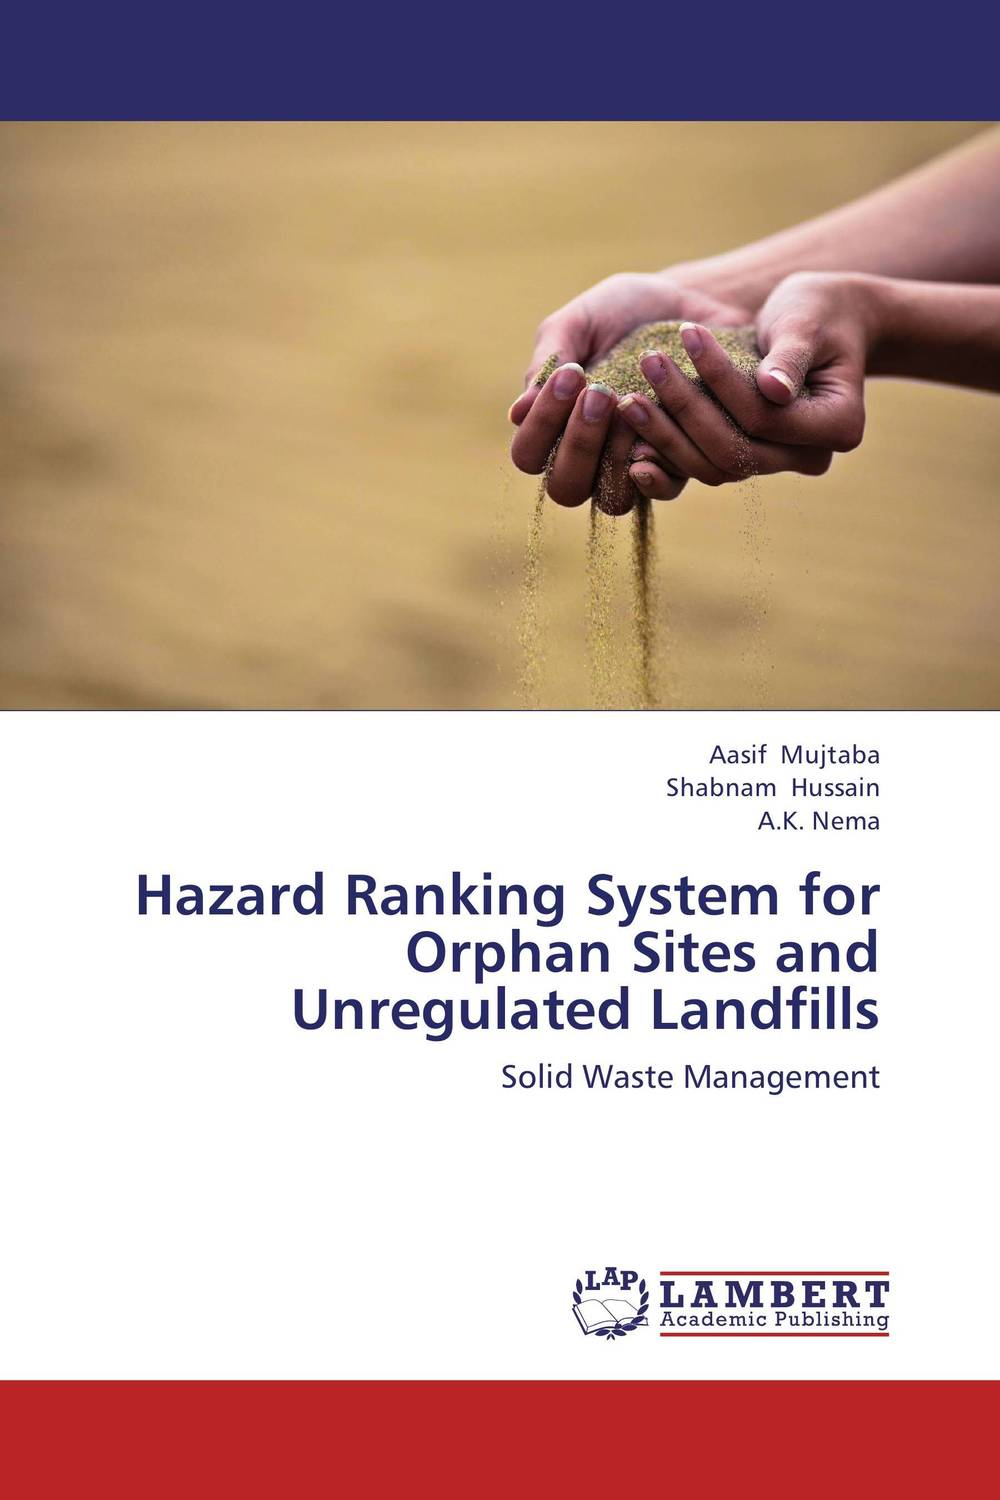 Hazard Ranking System for Orphan Sites and Unregulated Landfills aasif mujtaba shabnam hussain and a k nema hazard ranking system for orphan sites and unregulated landfills